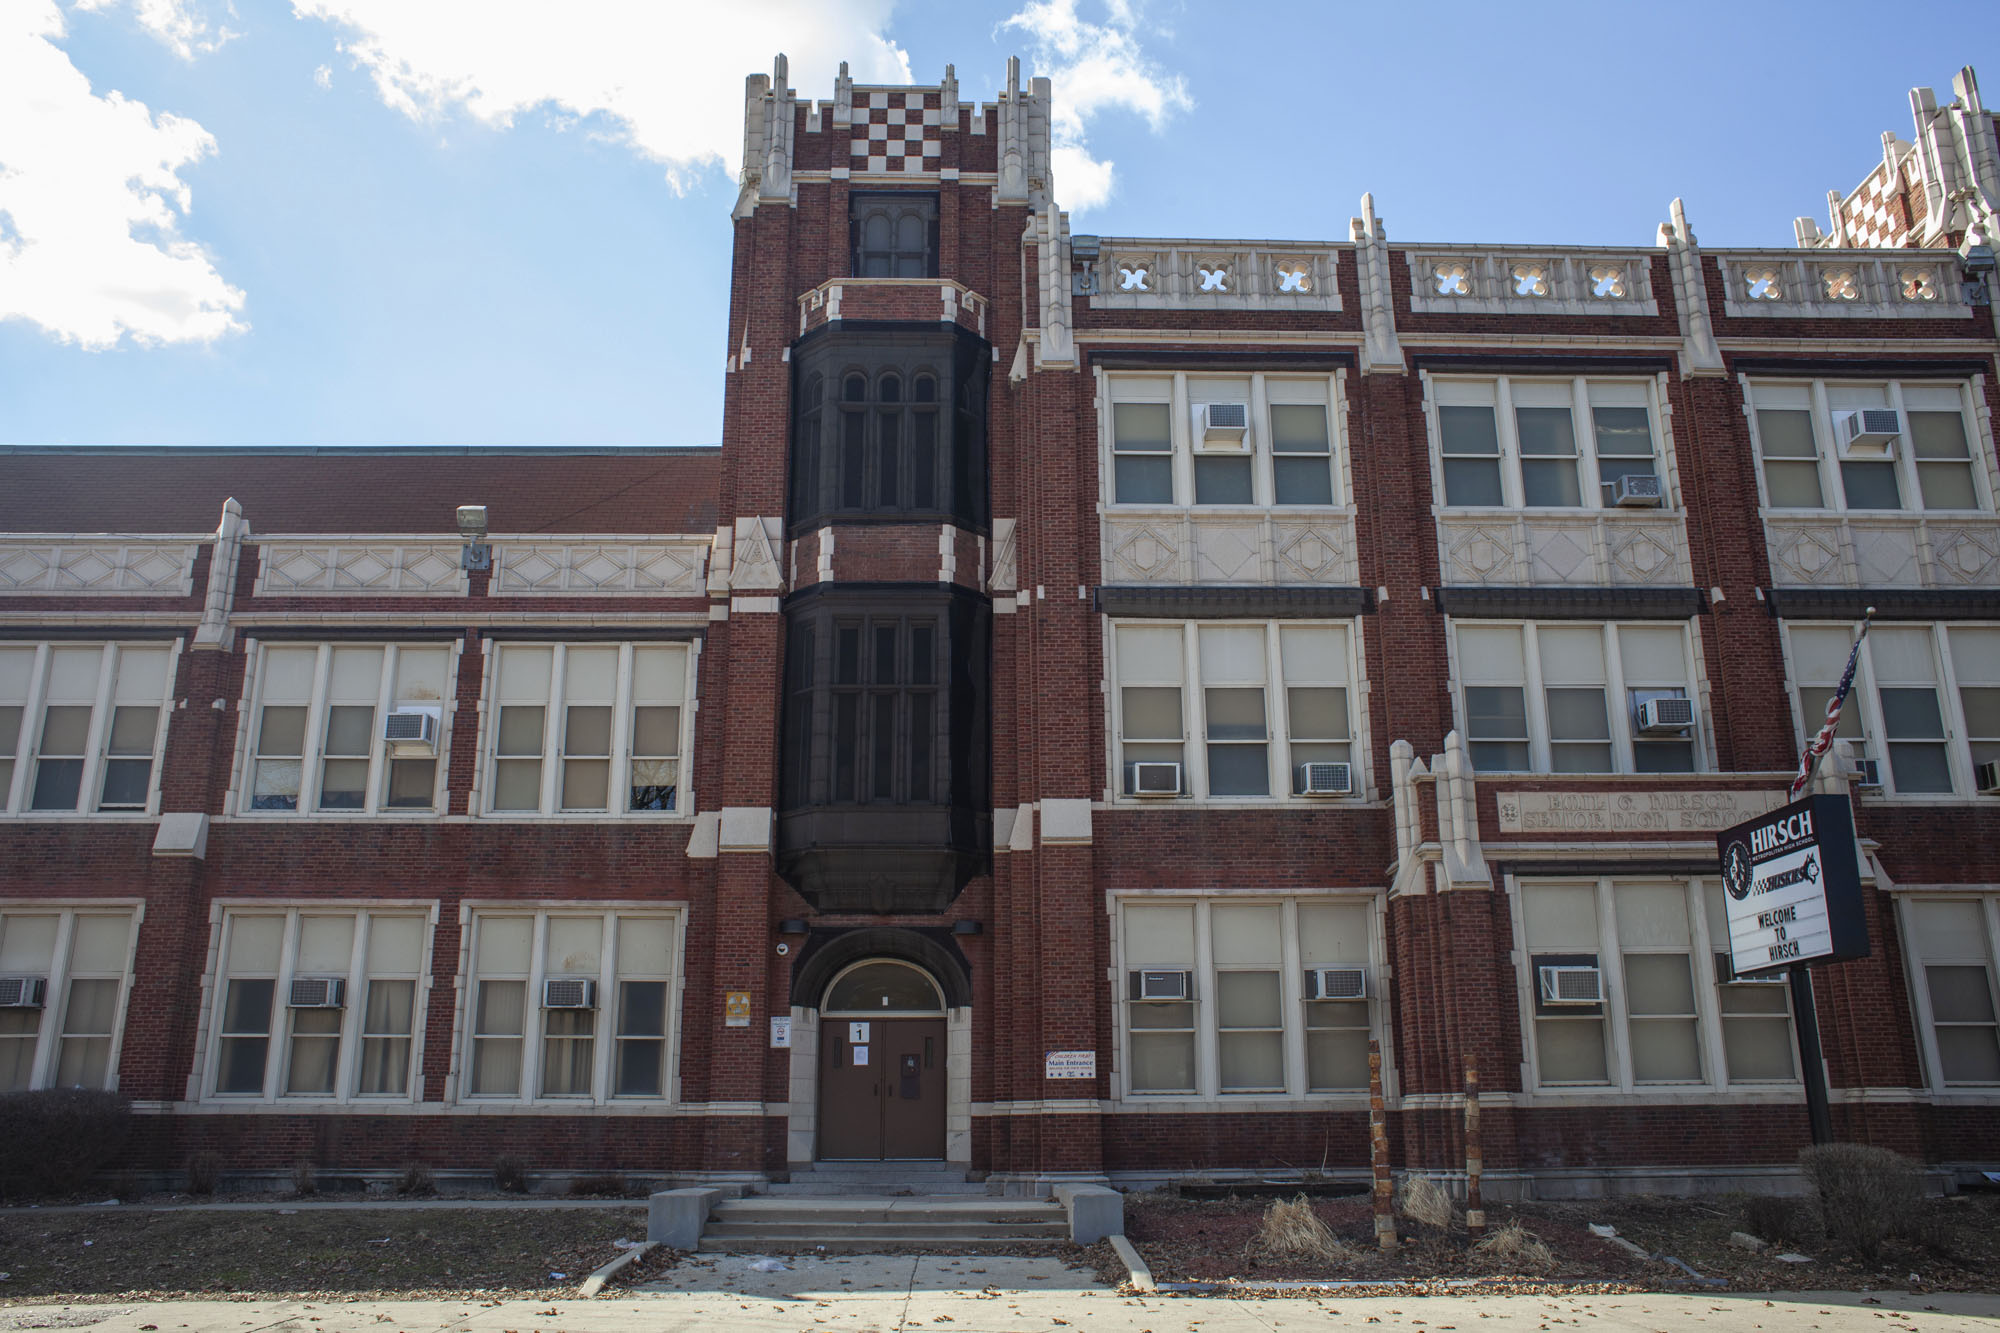 """Exterior view of Emil G. Hirsch Metropolitan High School, a public 4–year high school located in the Greater Grand Crossing neighborhood on the south side of Chicago. Hirsch is an underenrolled high school and one of the recipients of the school district's """"equity grants"""" for schools with low enrollment."""